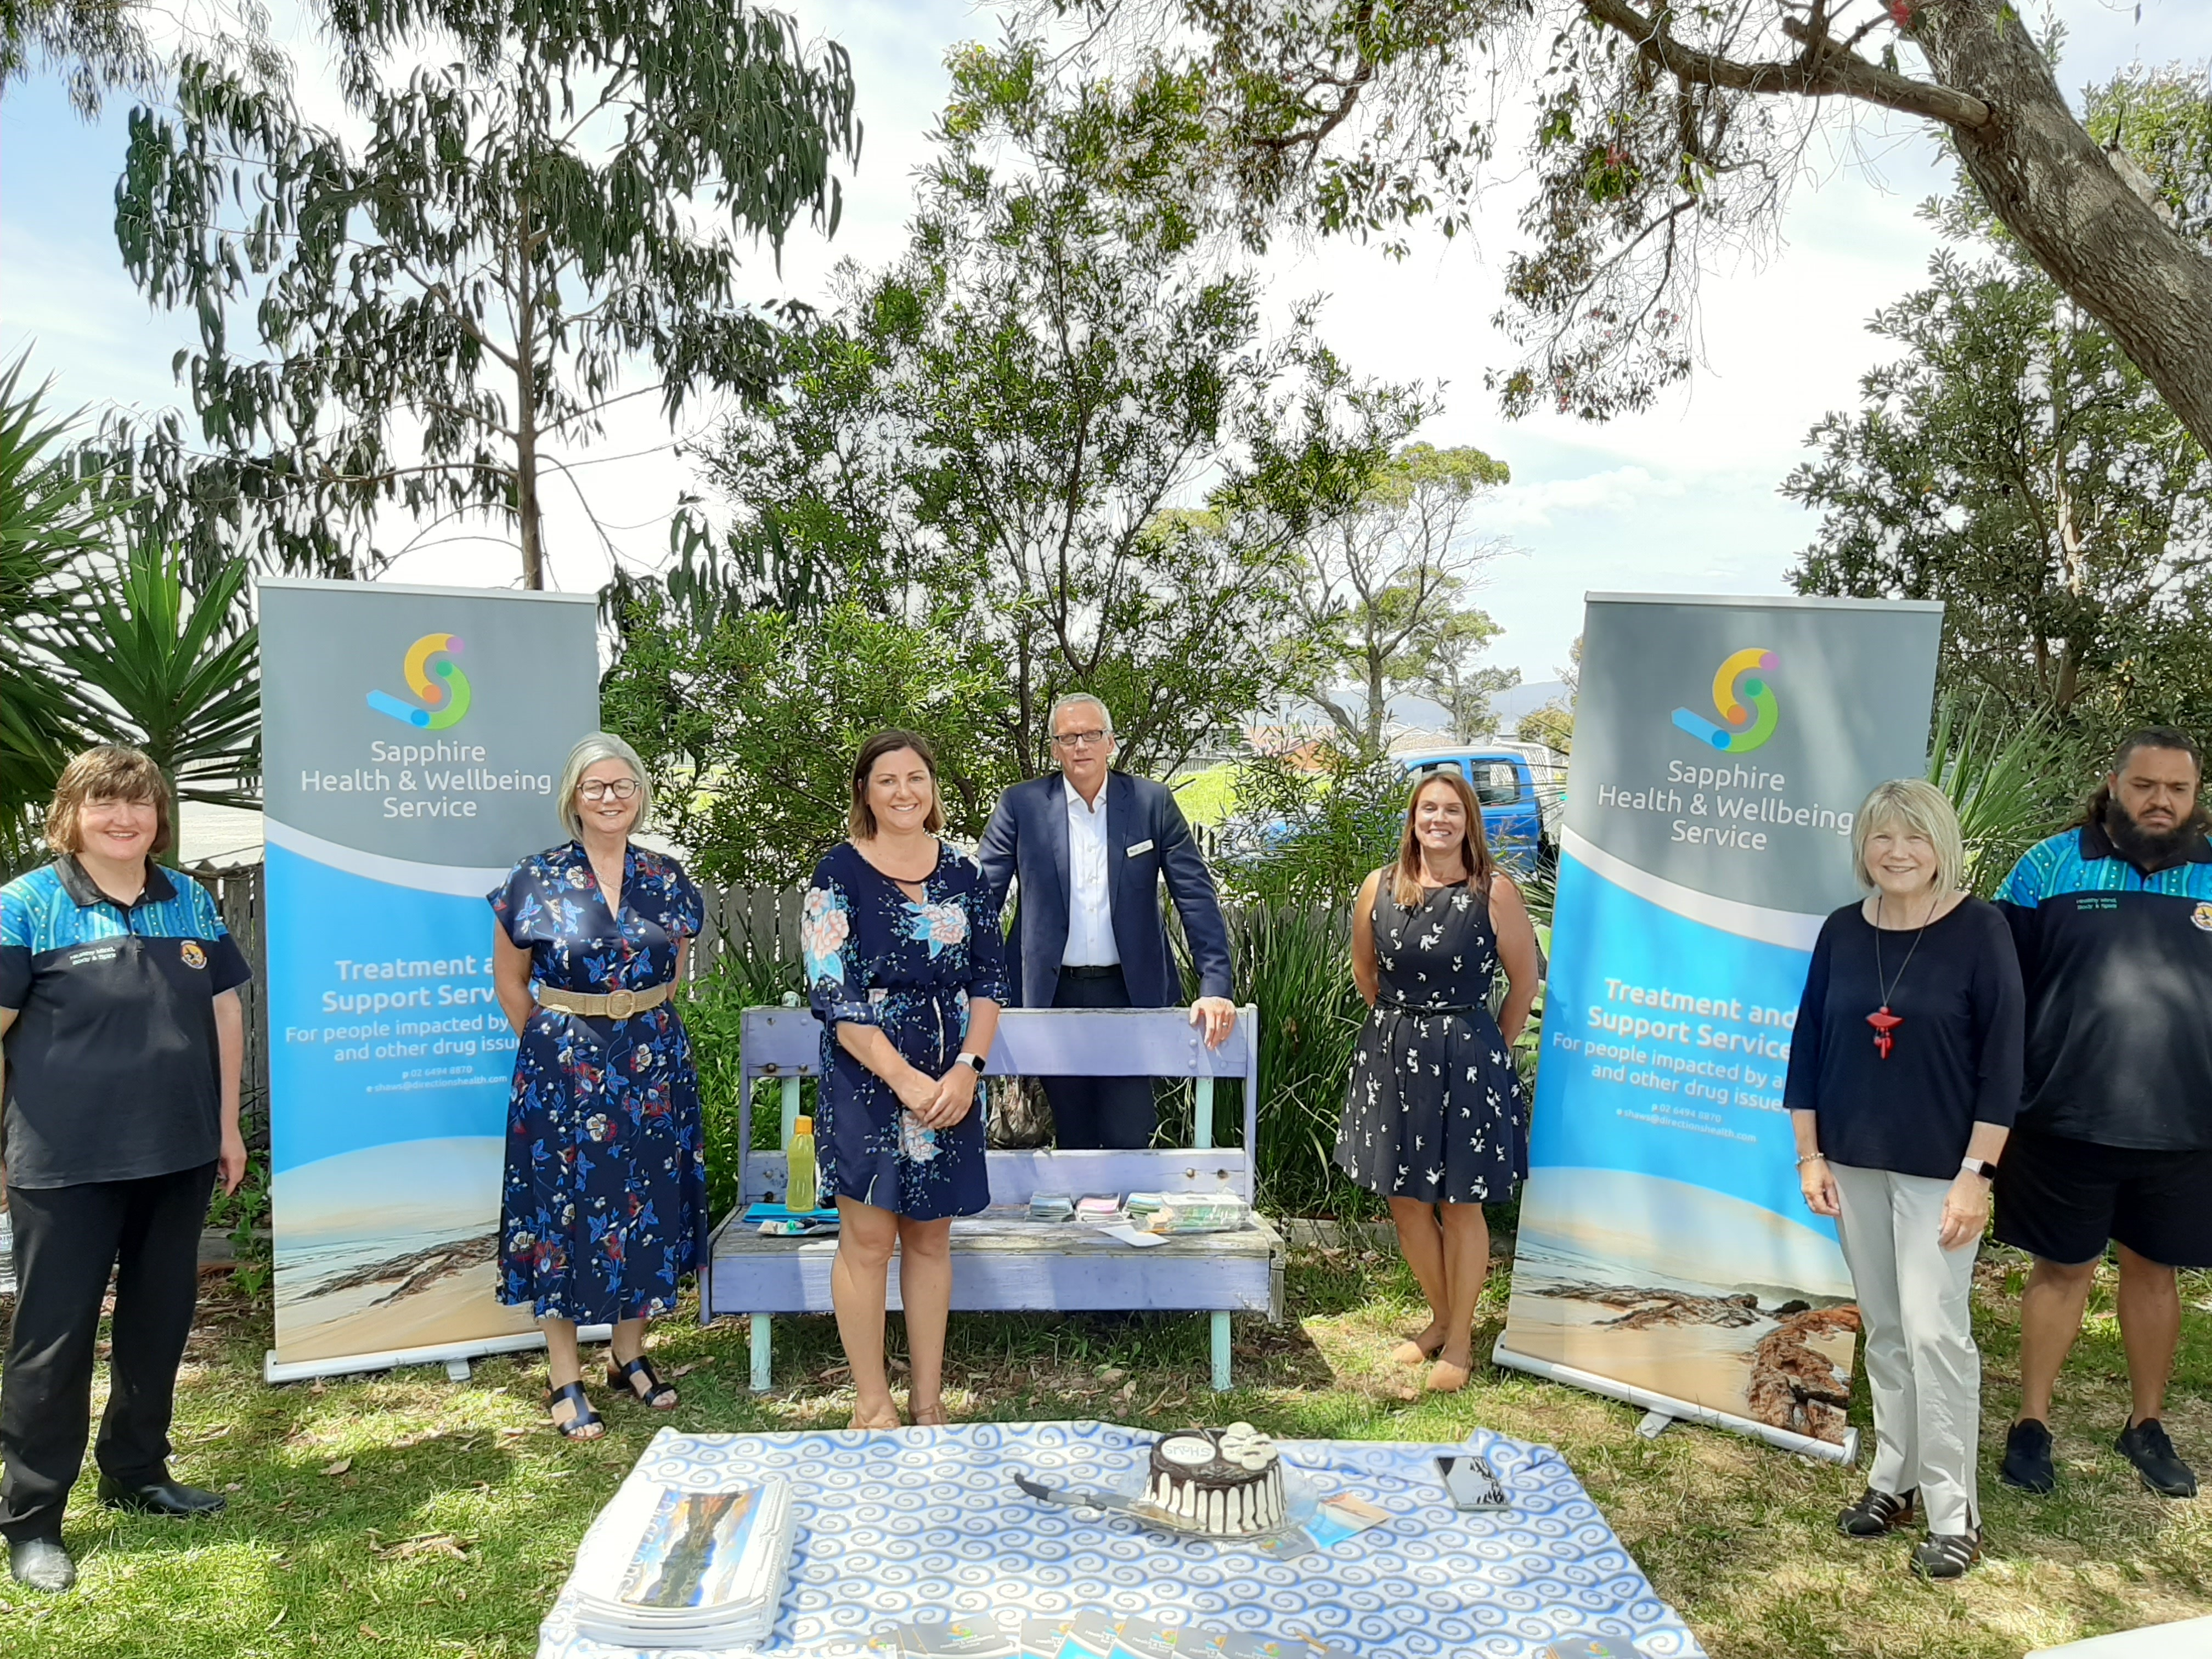 Holistic drug and alcohol treatment service opens in Bega Valley